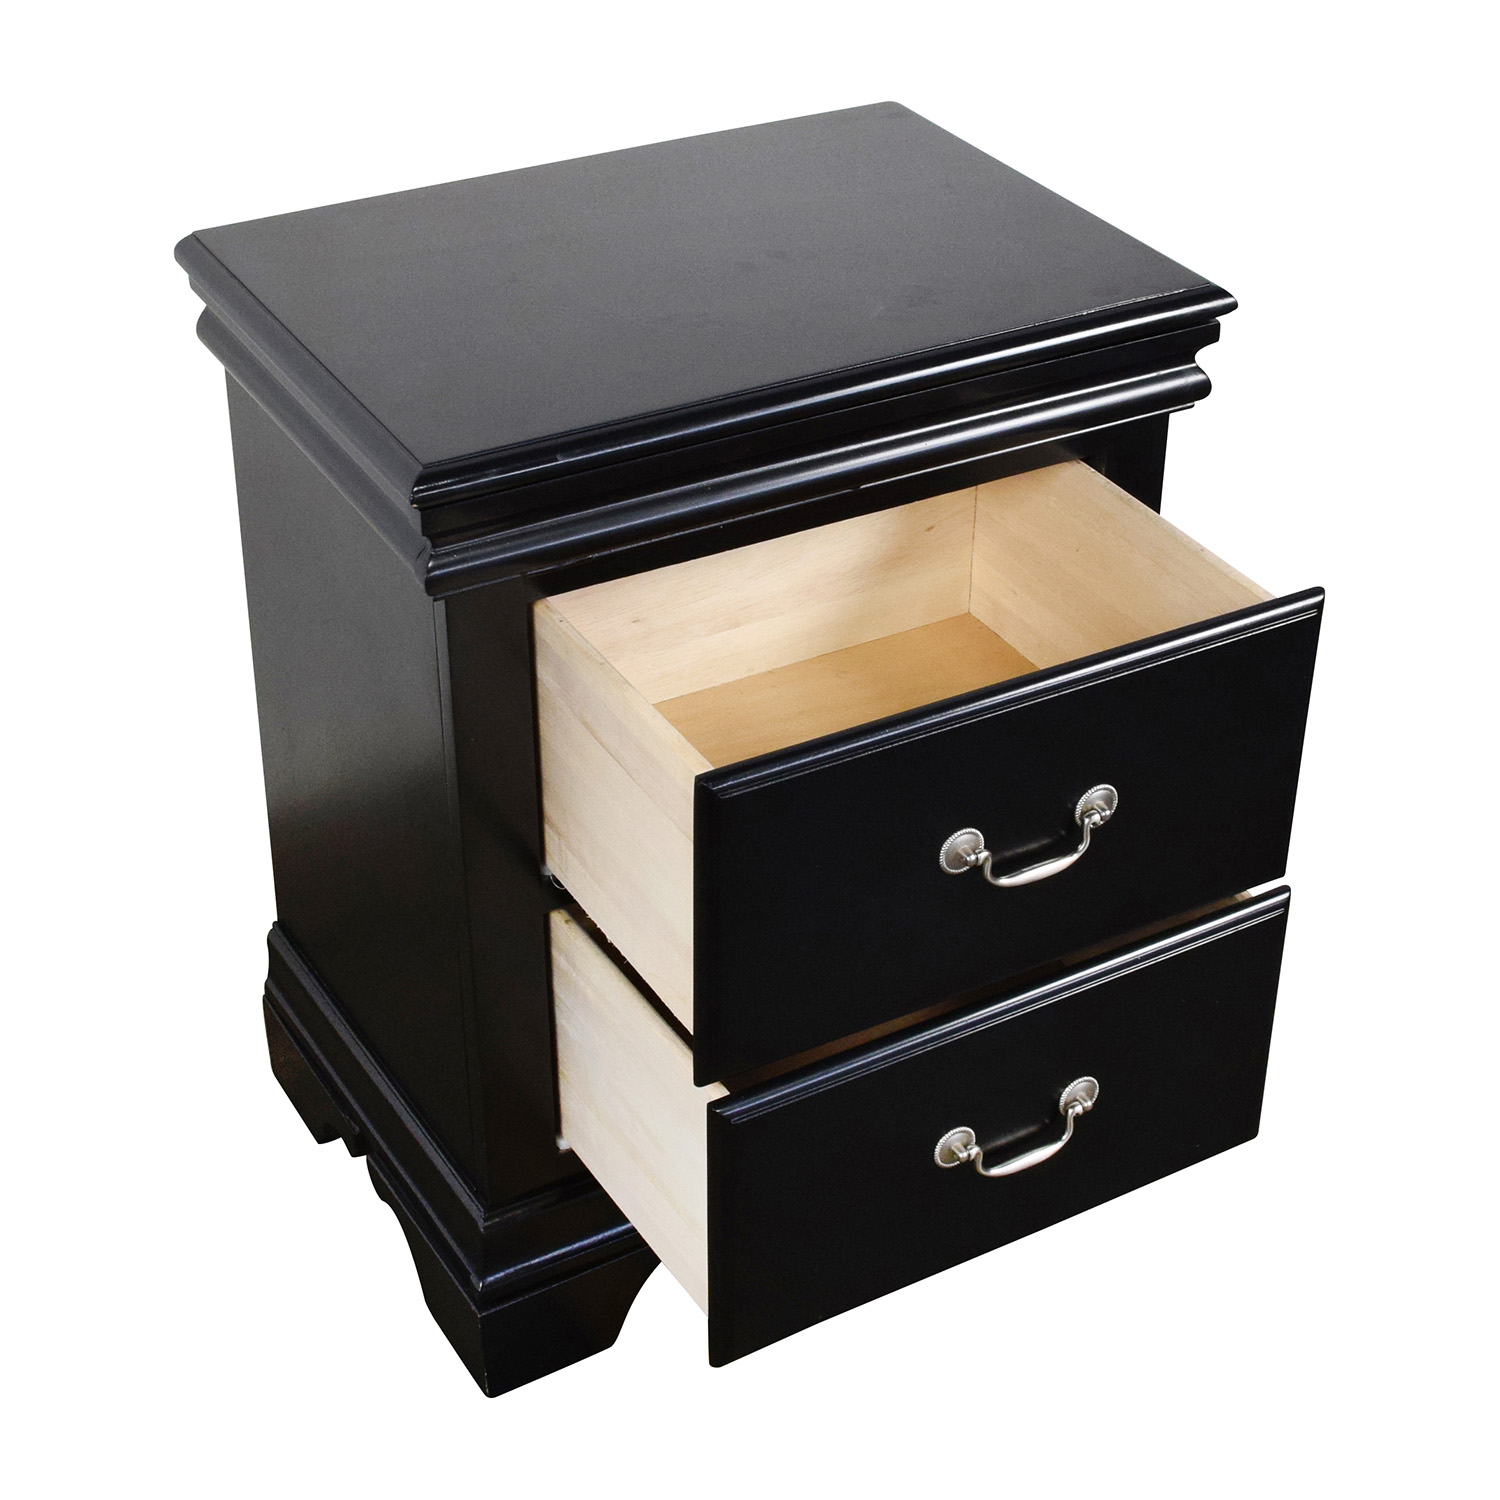 83 Off Bob 39 S Furniture Bob 39 S Furniture Louie Nightstand Tables